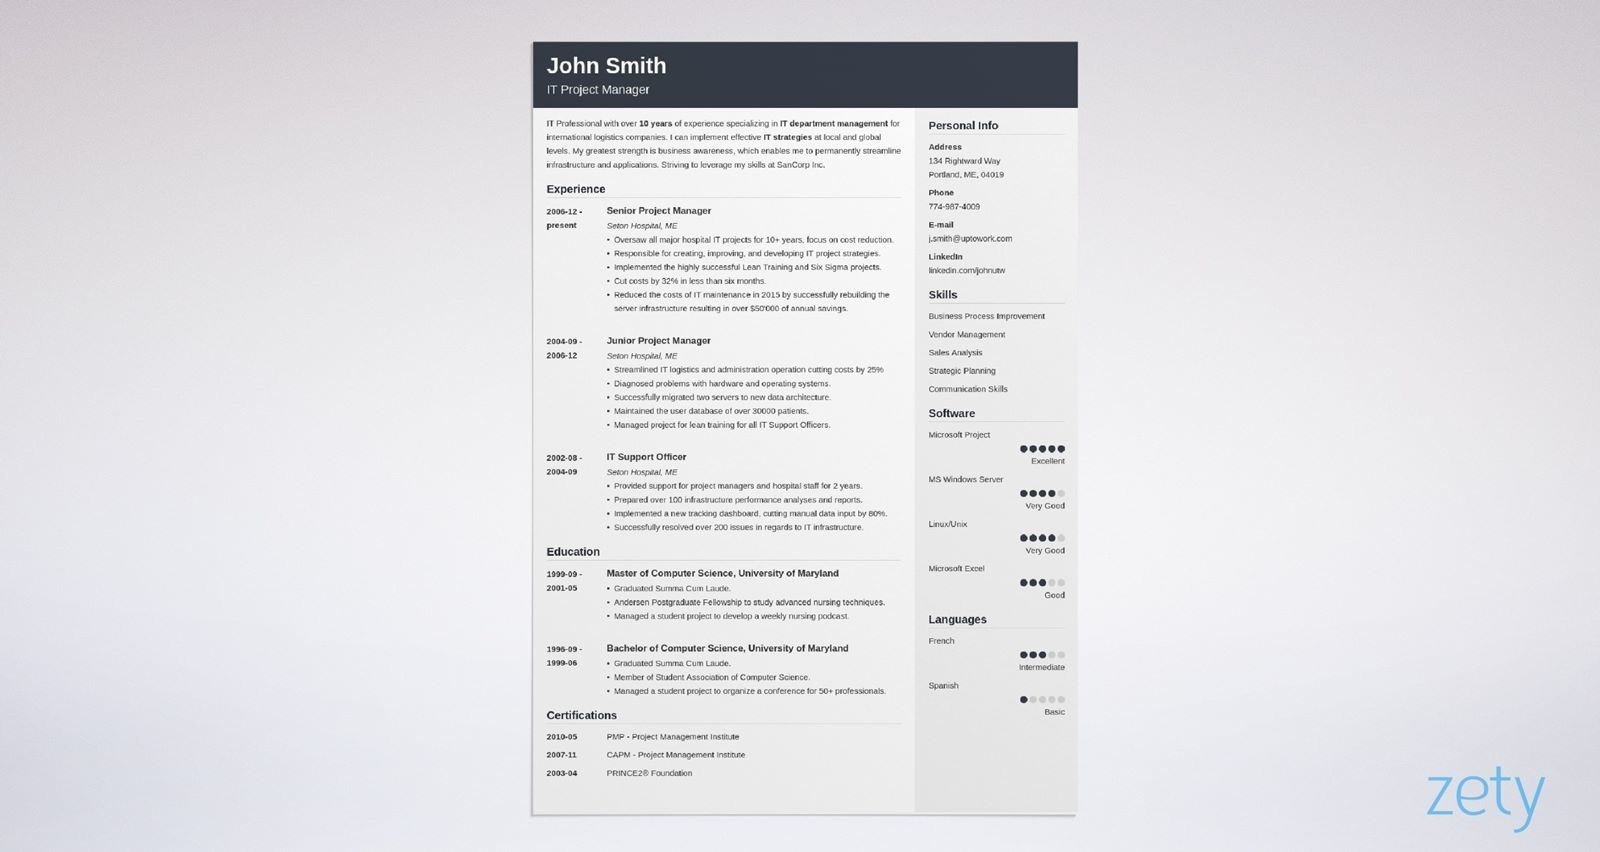 best resume templates for top picks to format sample lawn care worker school secretary Resume Best Format For Resume 2020